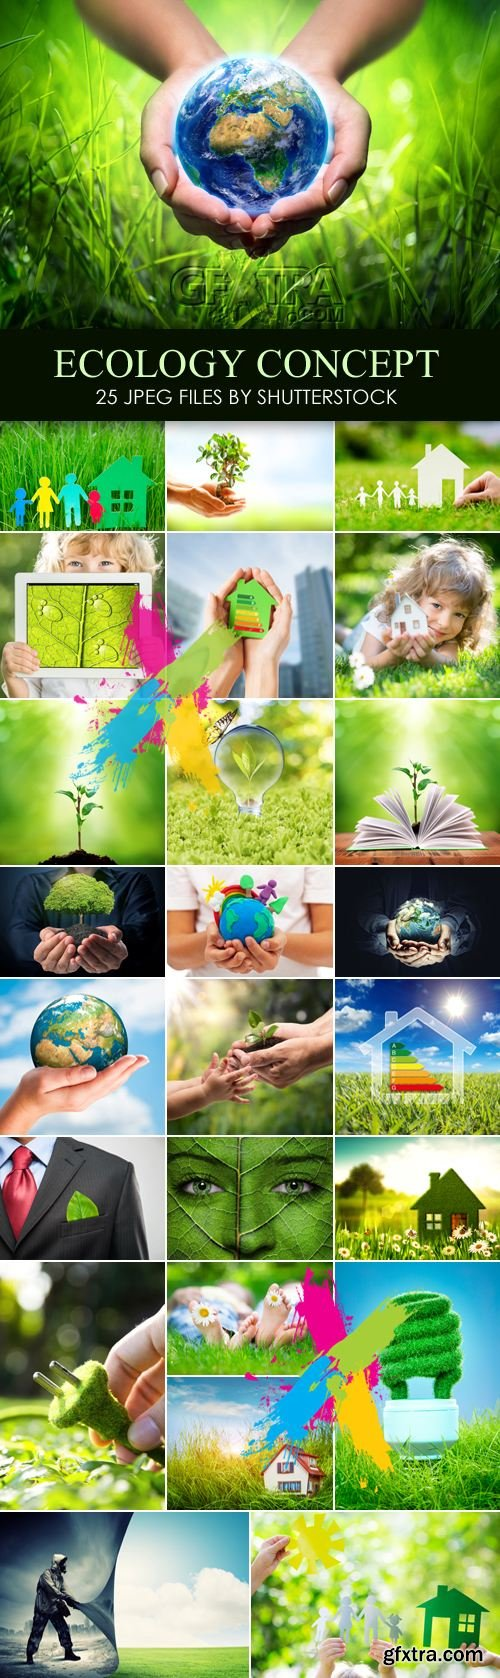 Stock Photo - Ecology Concept, Green Earth